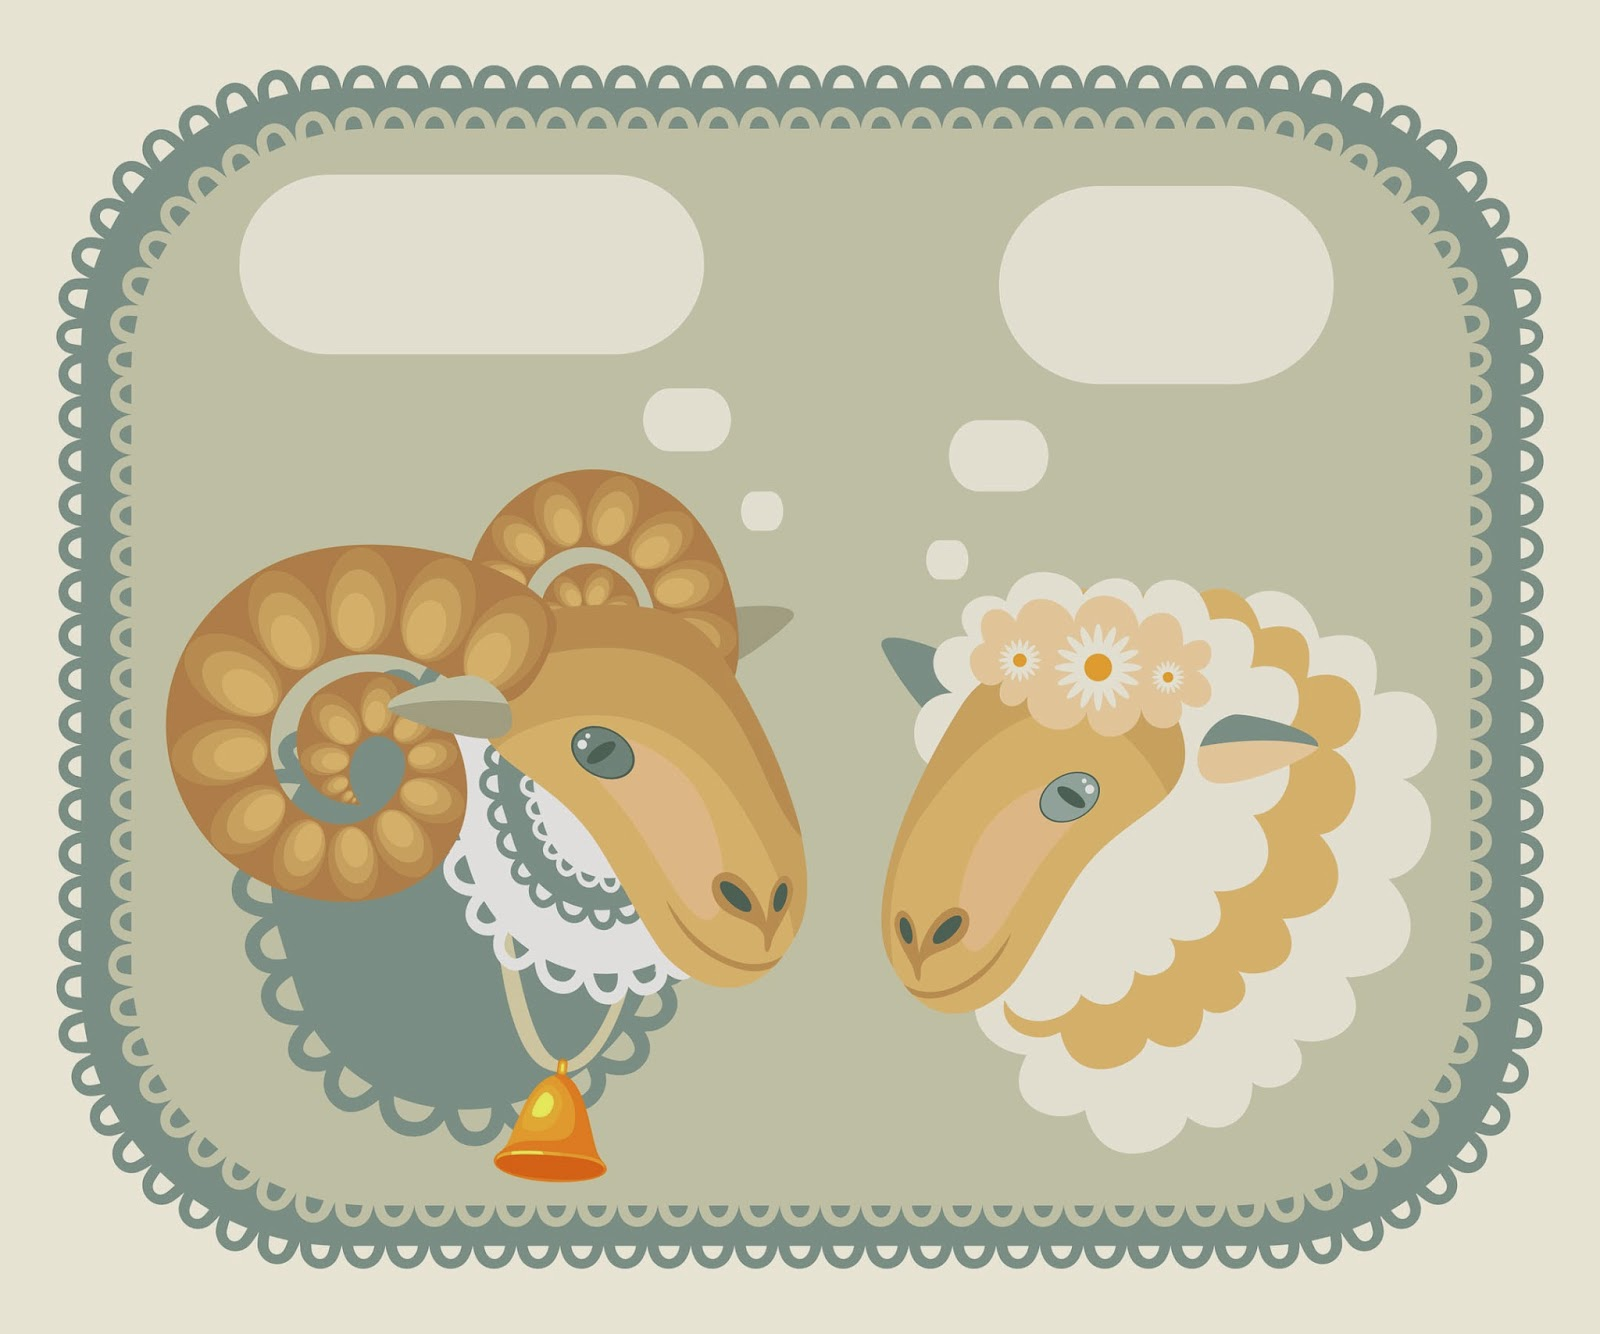 http://www.ecliparts.com/2014/11/sheep-and-goat-2015-new-year-vector.html